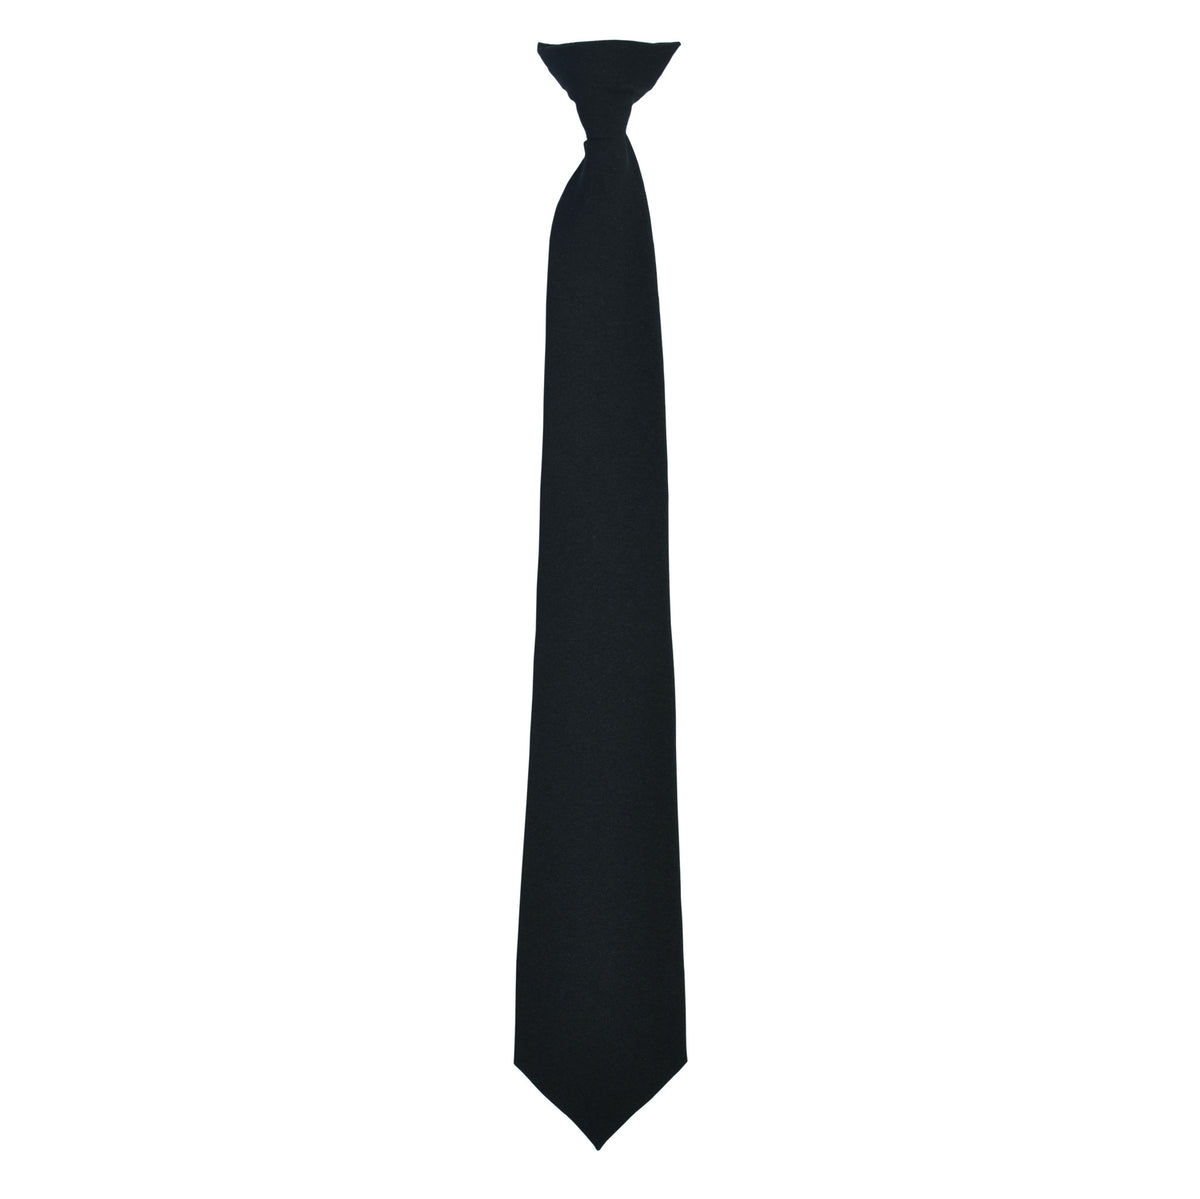 Clip-On Ties - peterdrew.com  - 2